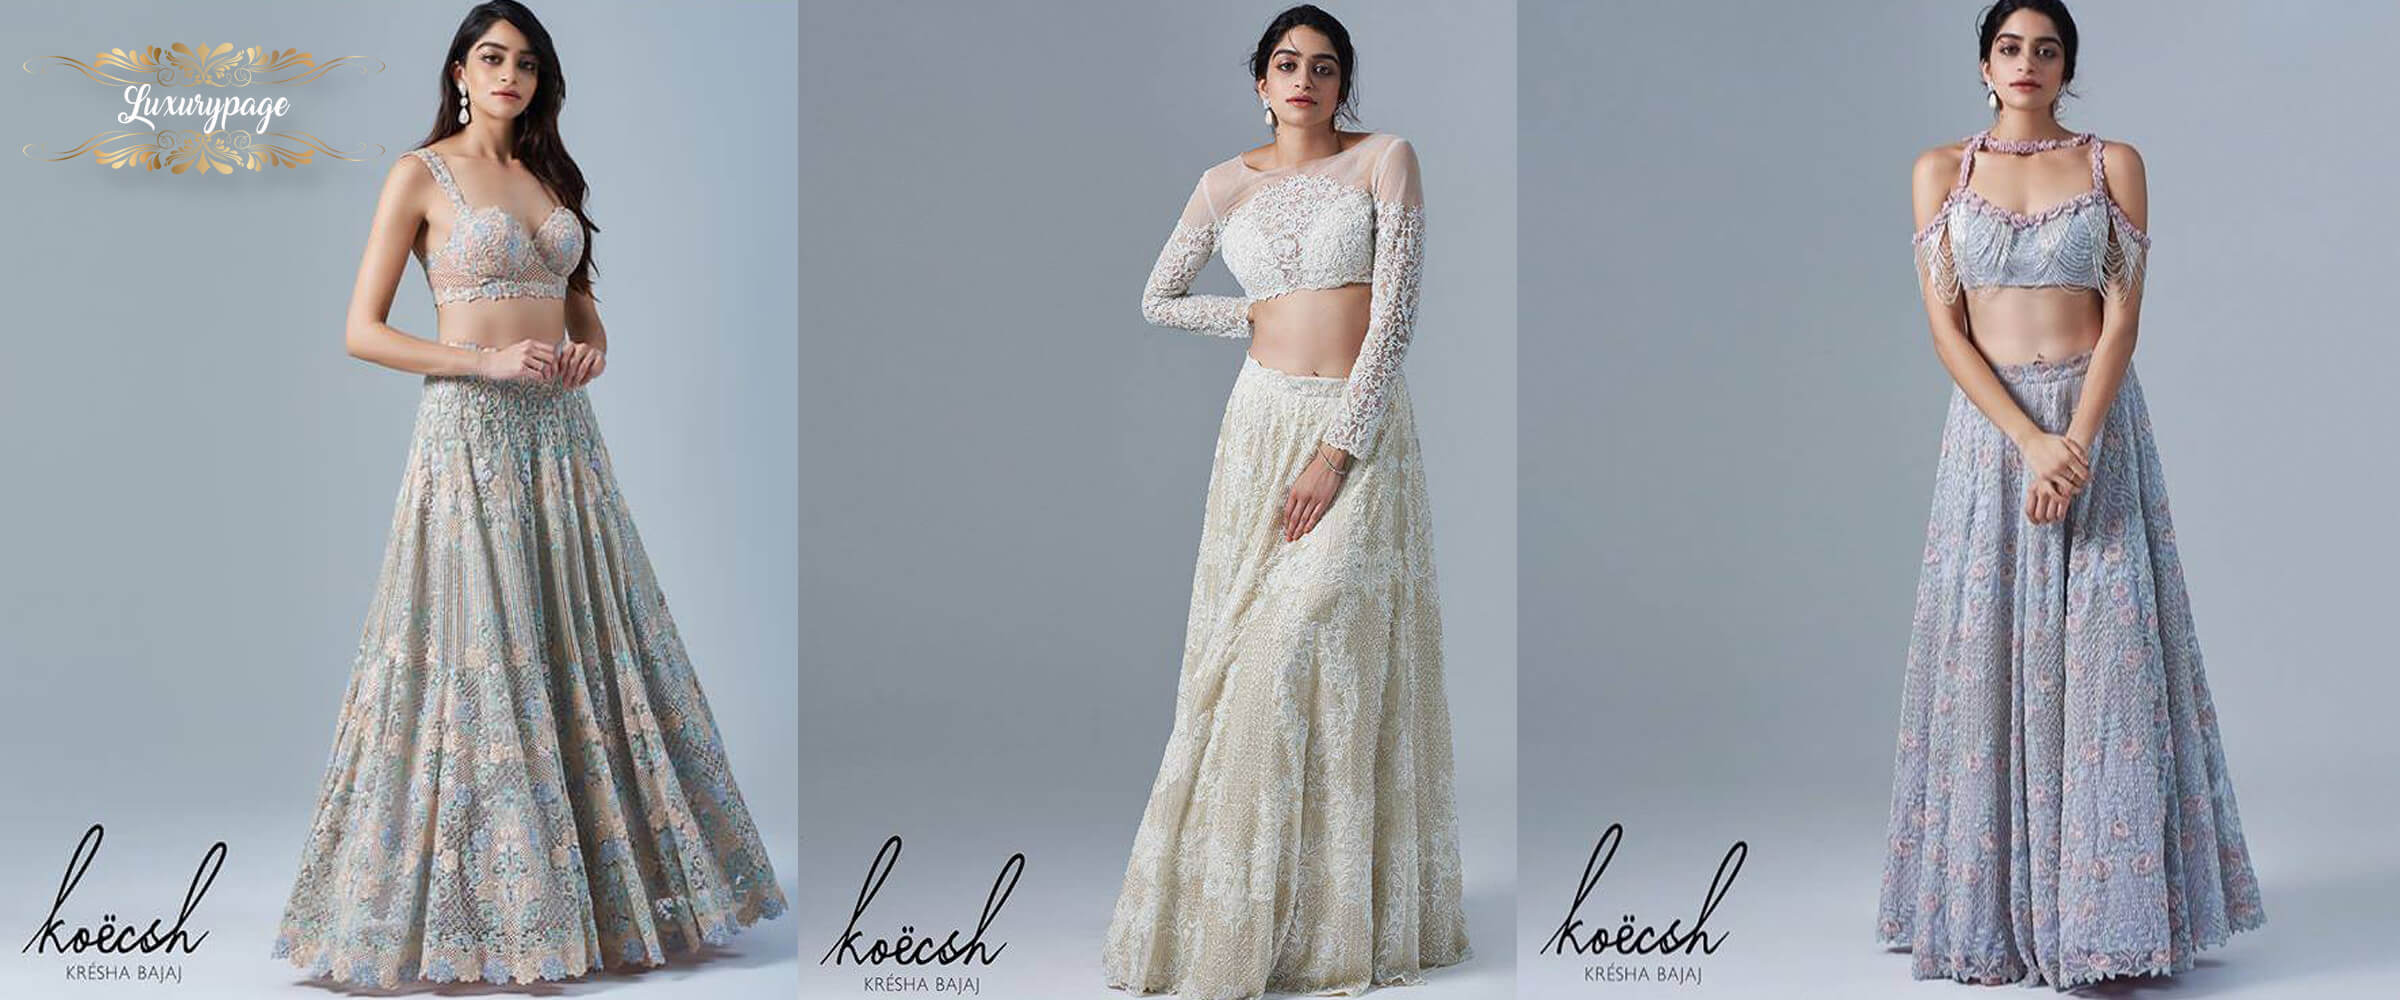 Kresha Bajaj's Newly Launched Bridal Boutique in Bandra